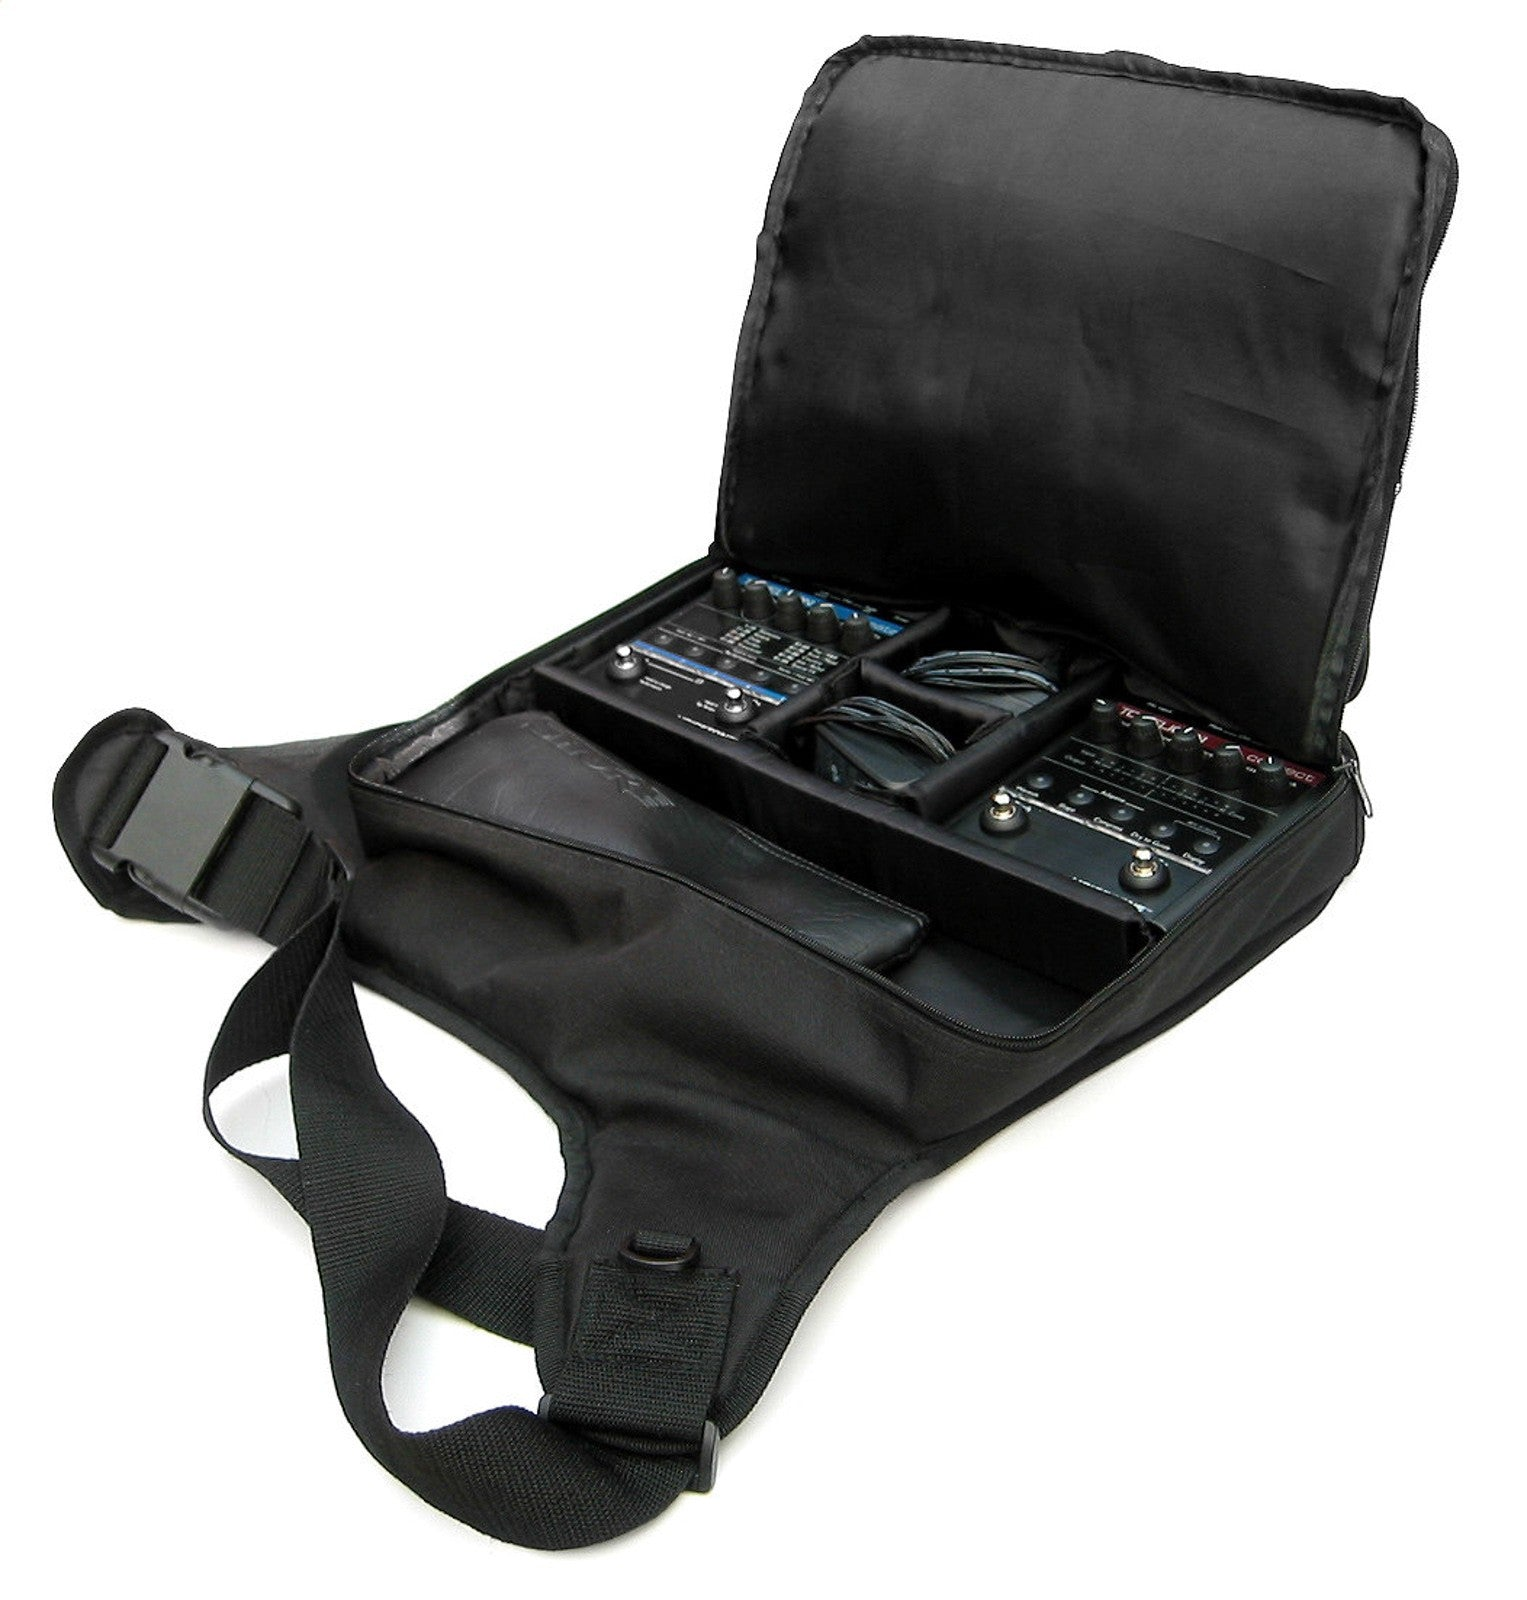 tc helicon gigbag voicelive 2 3 l a music canada 39 s favourite music store. Black Bedroom Furniture Sets. Home Design Ideas